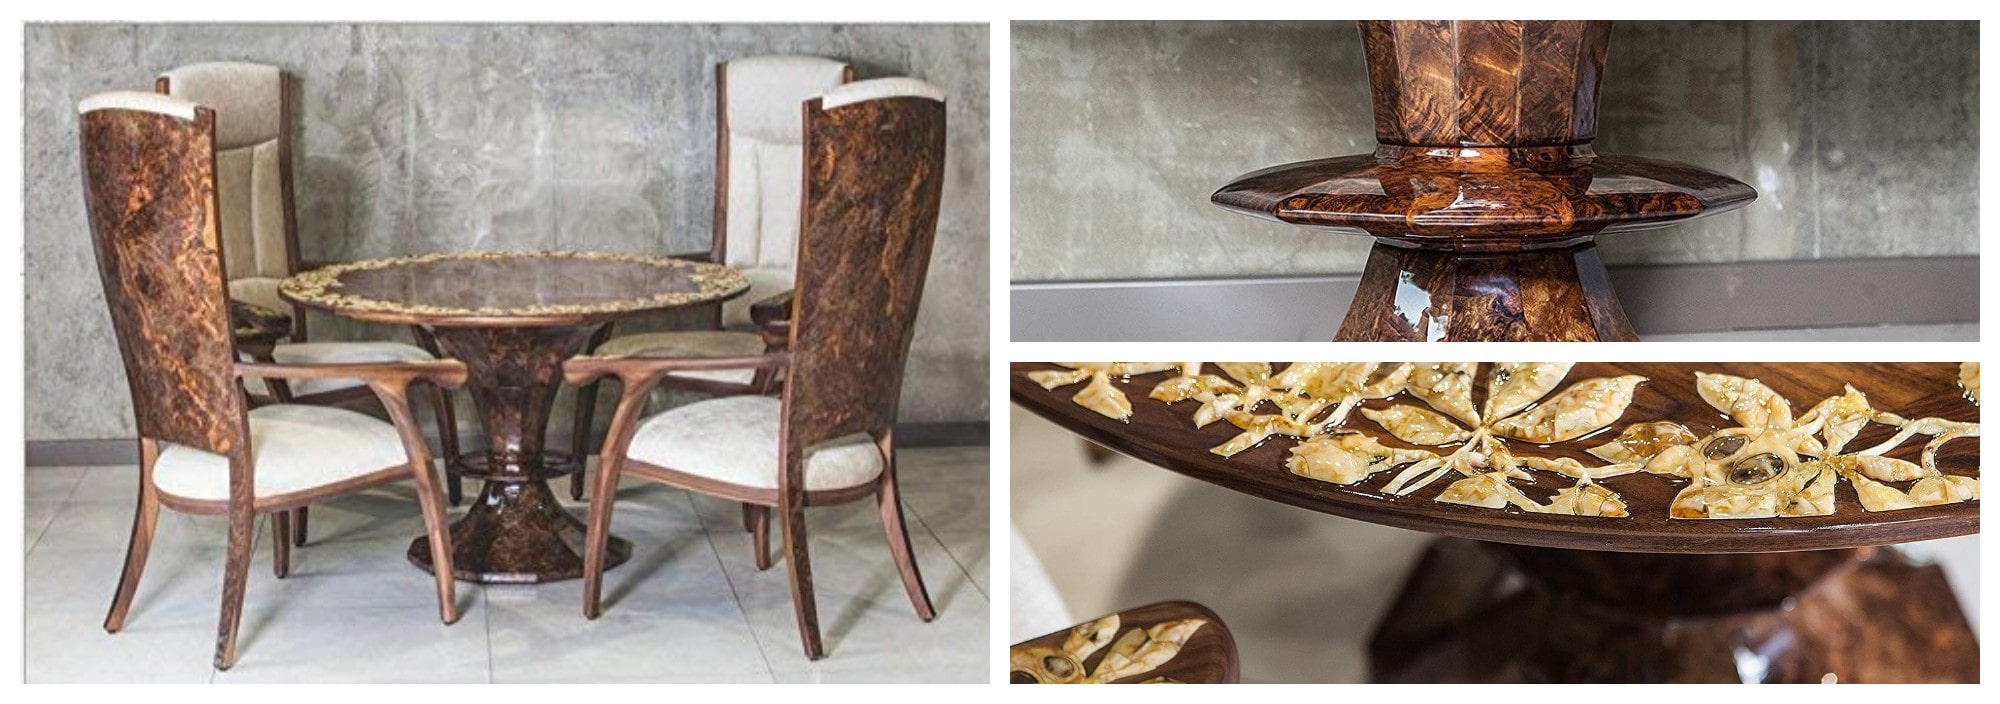 A walnut table and walnut chair with amber decoration